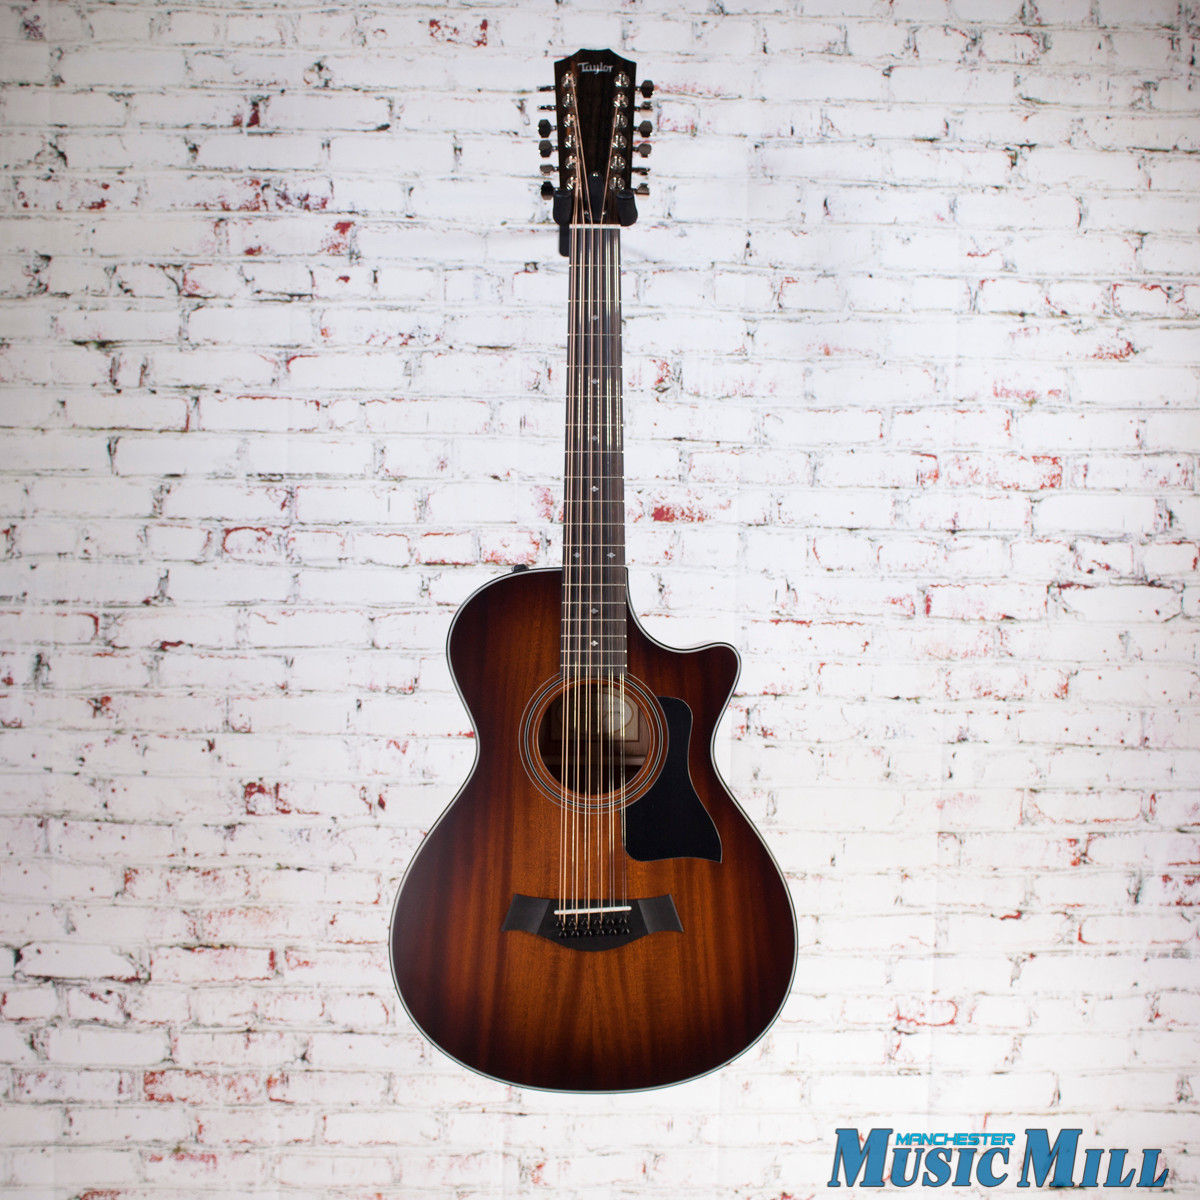 Taylor 362ce 12 String 12 Fret Grand Concert Acoustic Electric Guitar Shaded Edgeburst